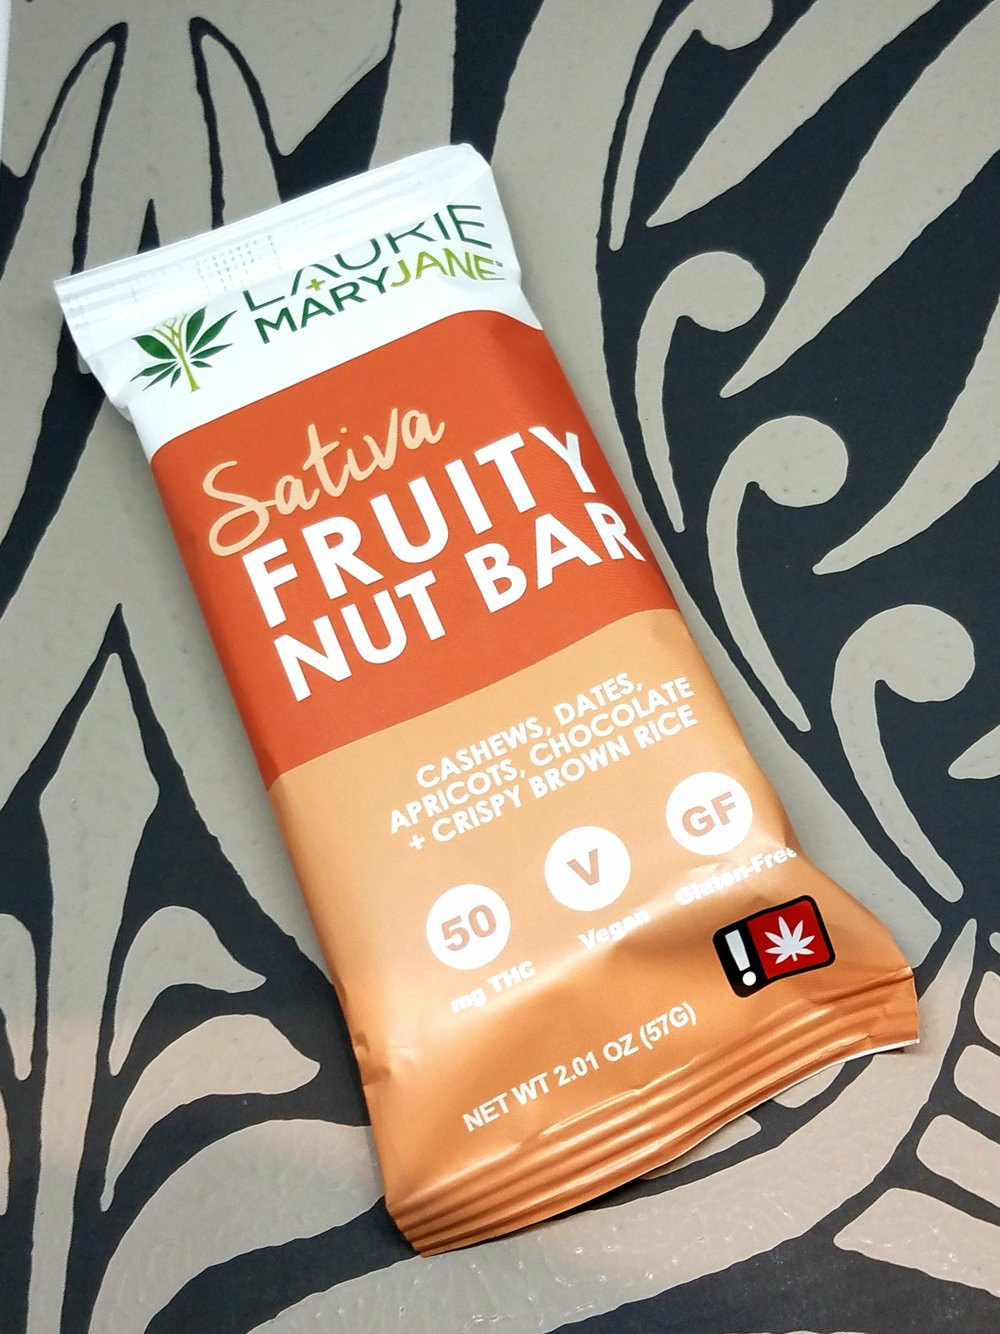 Sativa Fruity Nut Bar produced by Laurie + MaryJane